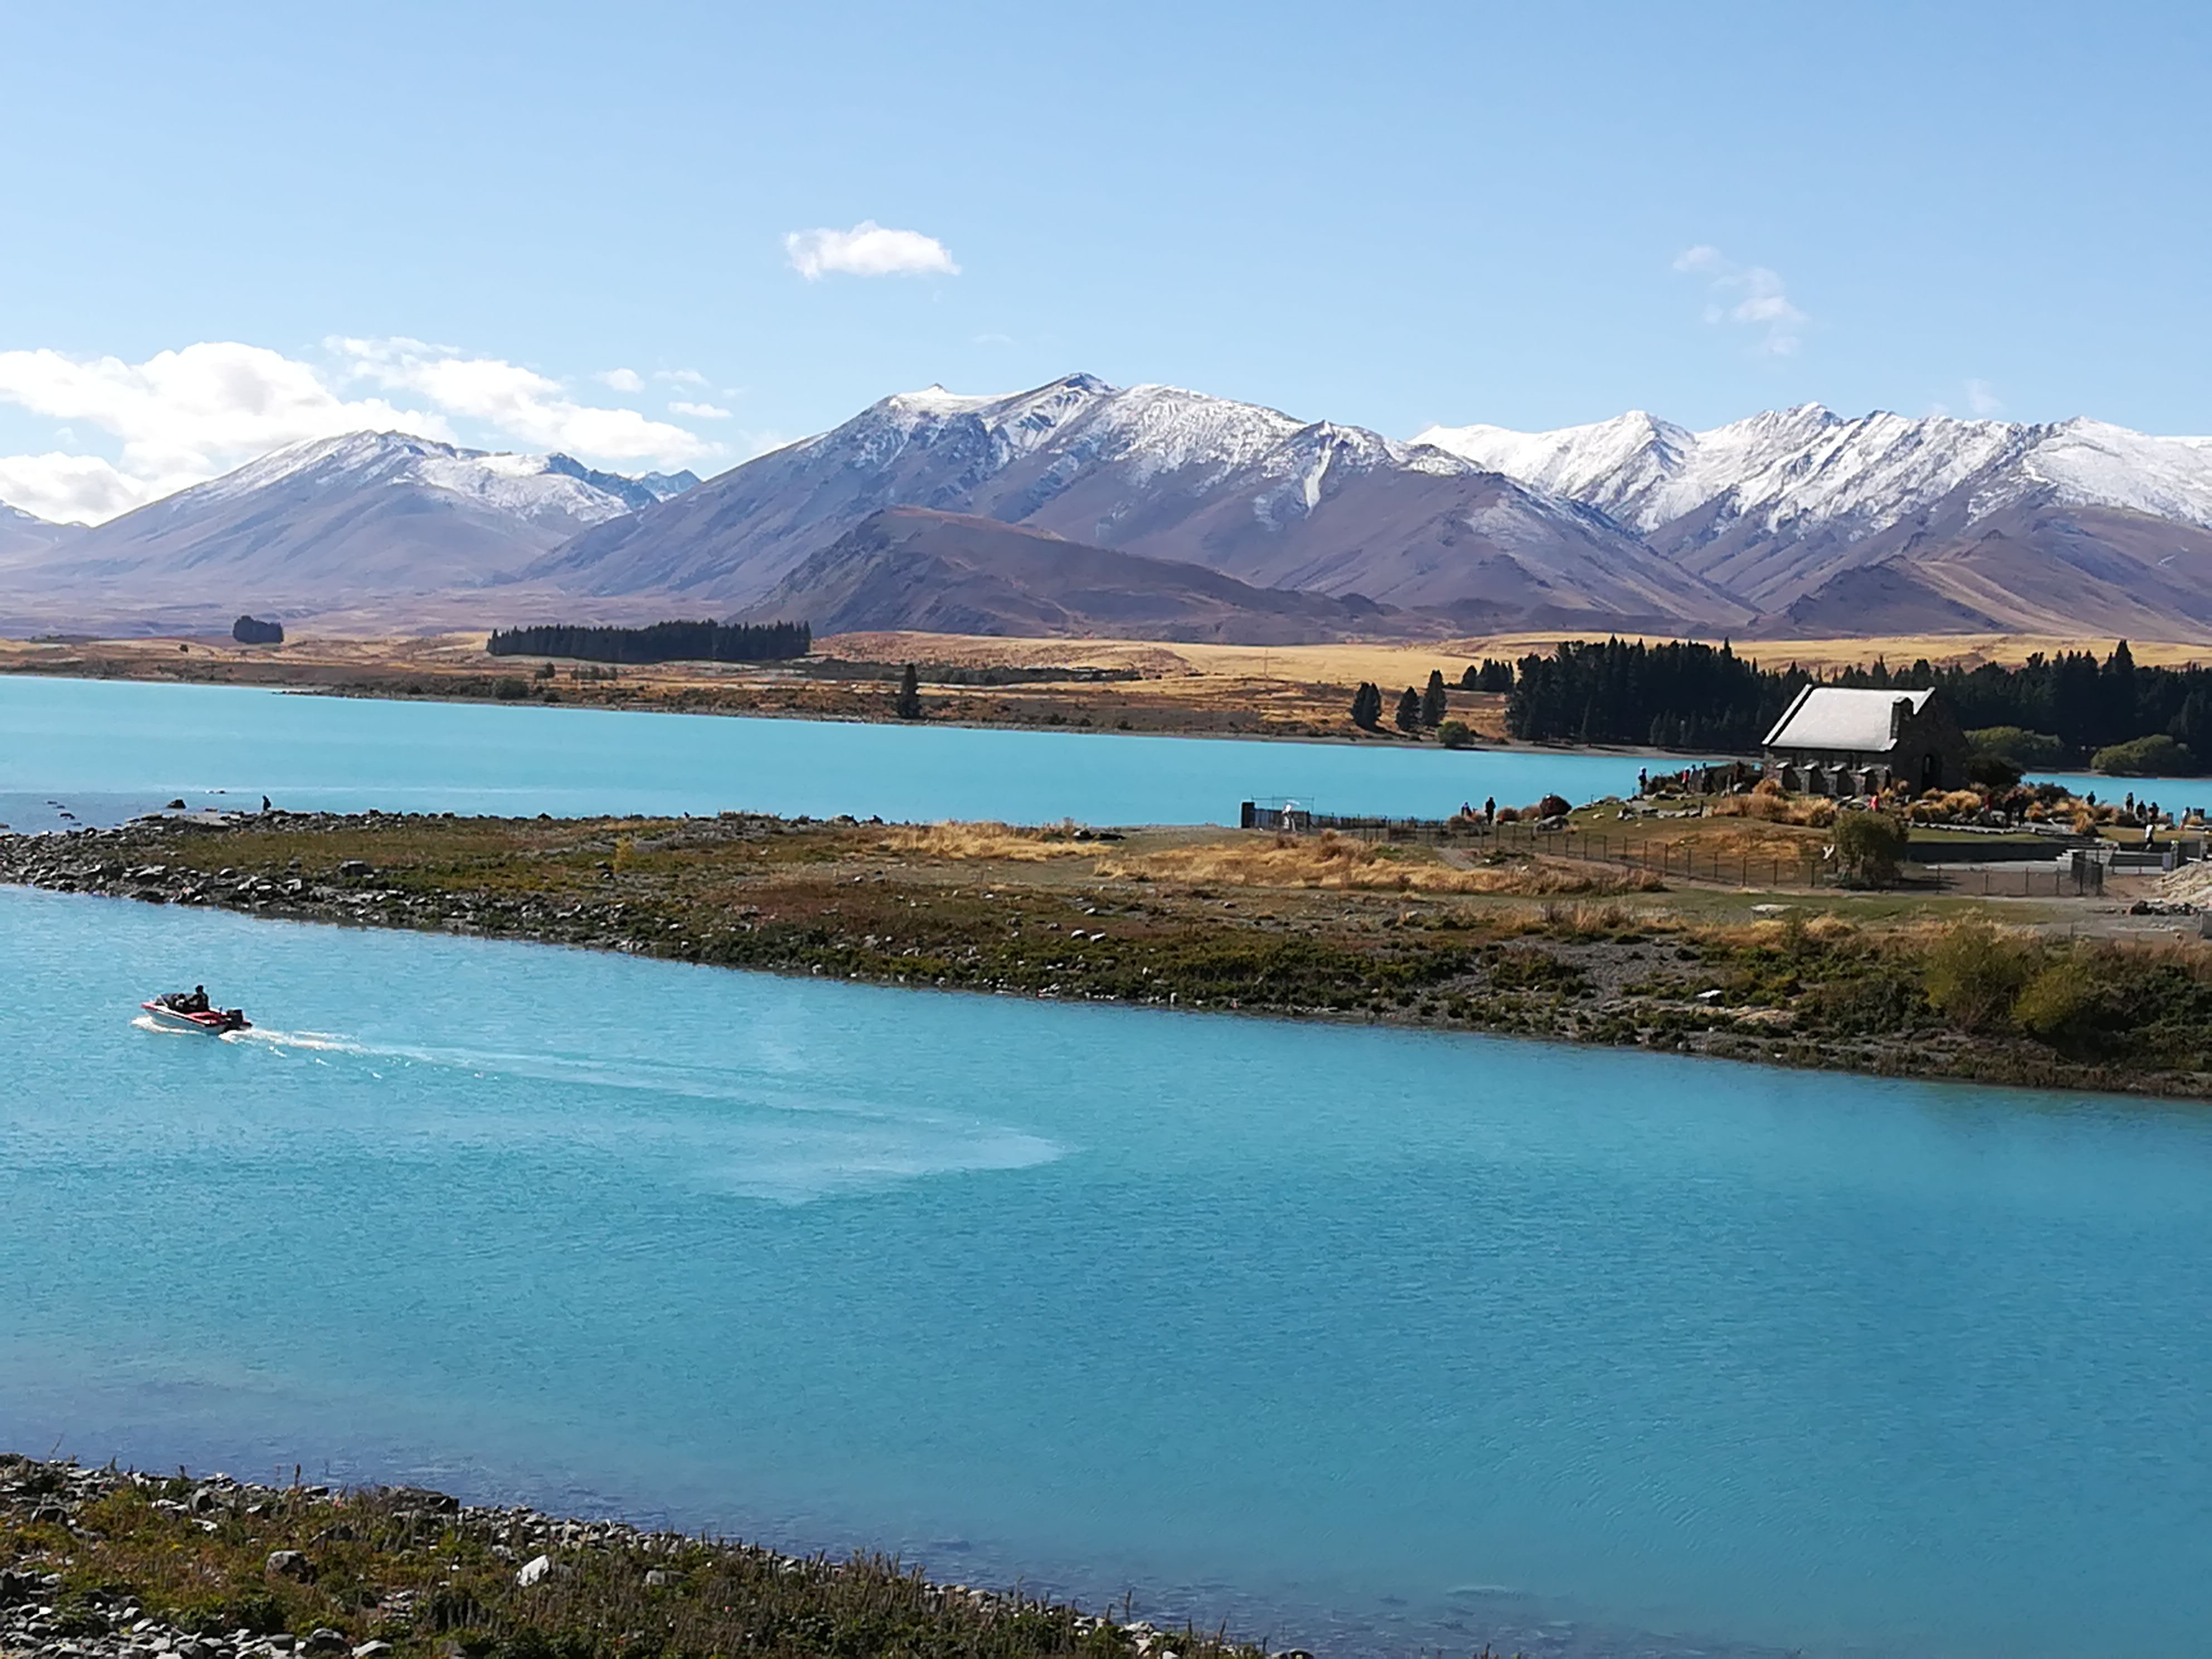 Lake Tekapo with Church of the Good Sheperd